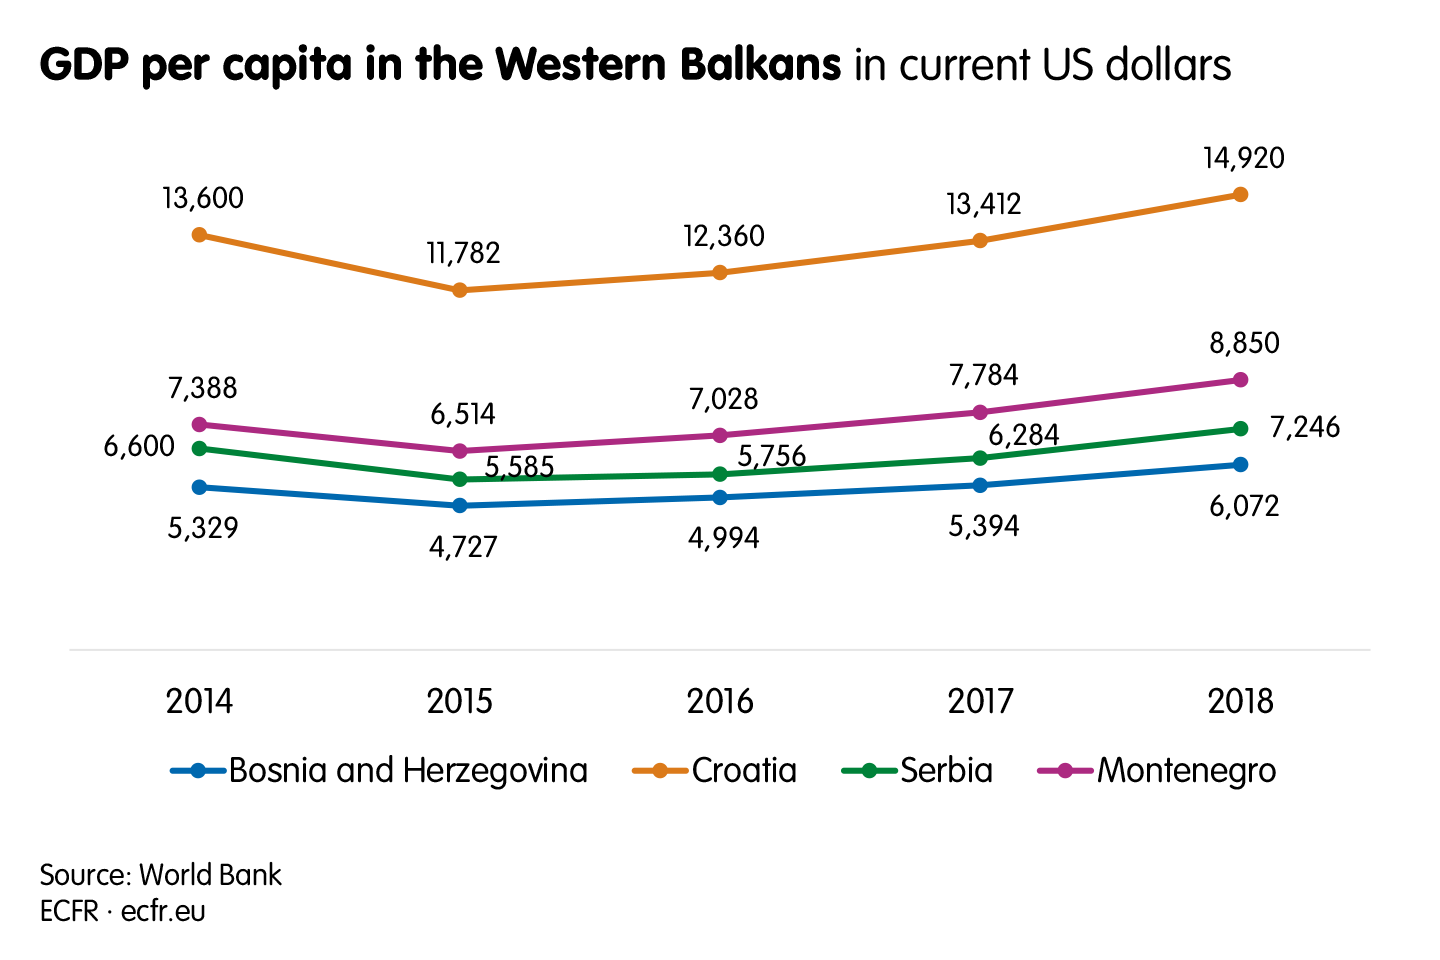 GDP per capita in the Western Balkans in current US dollars